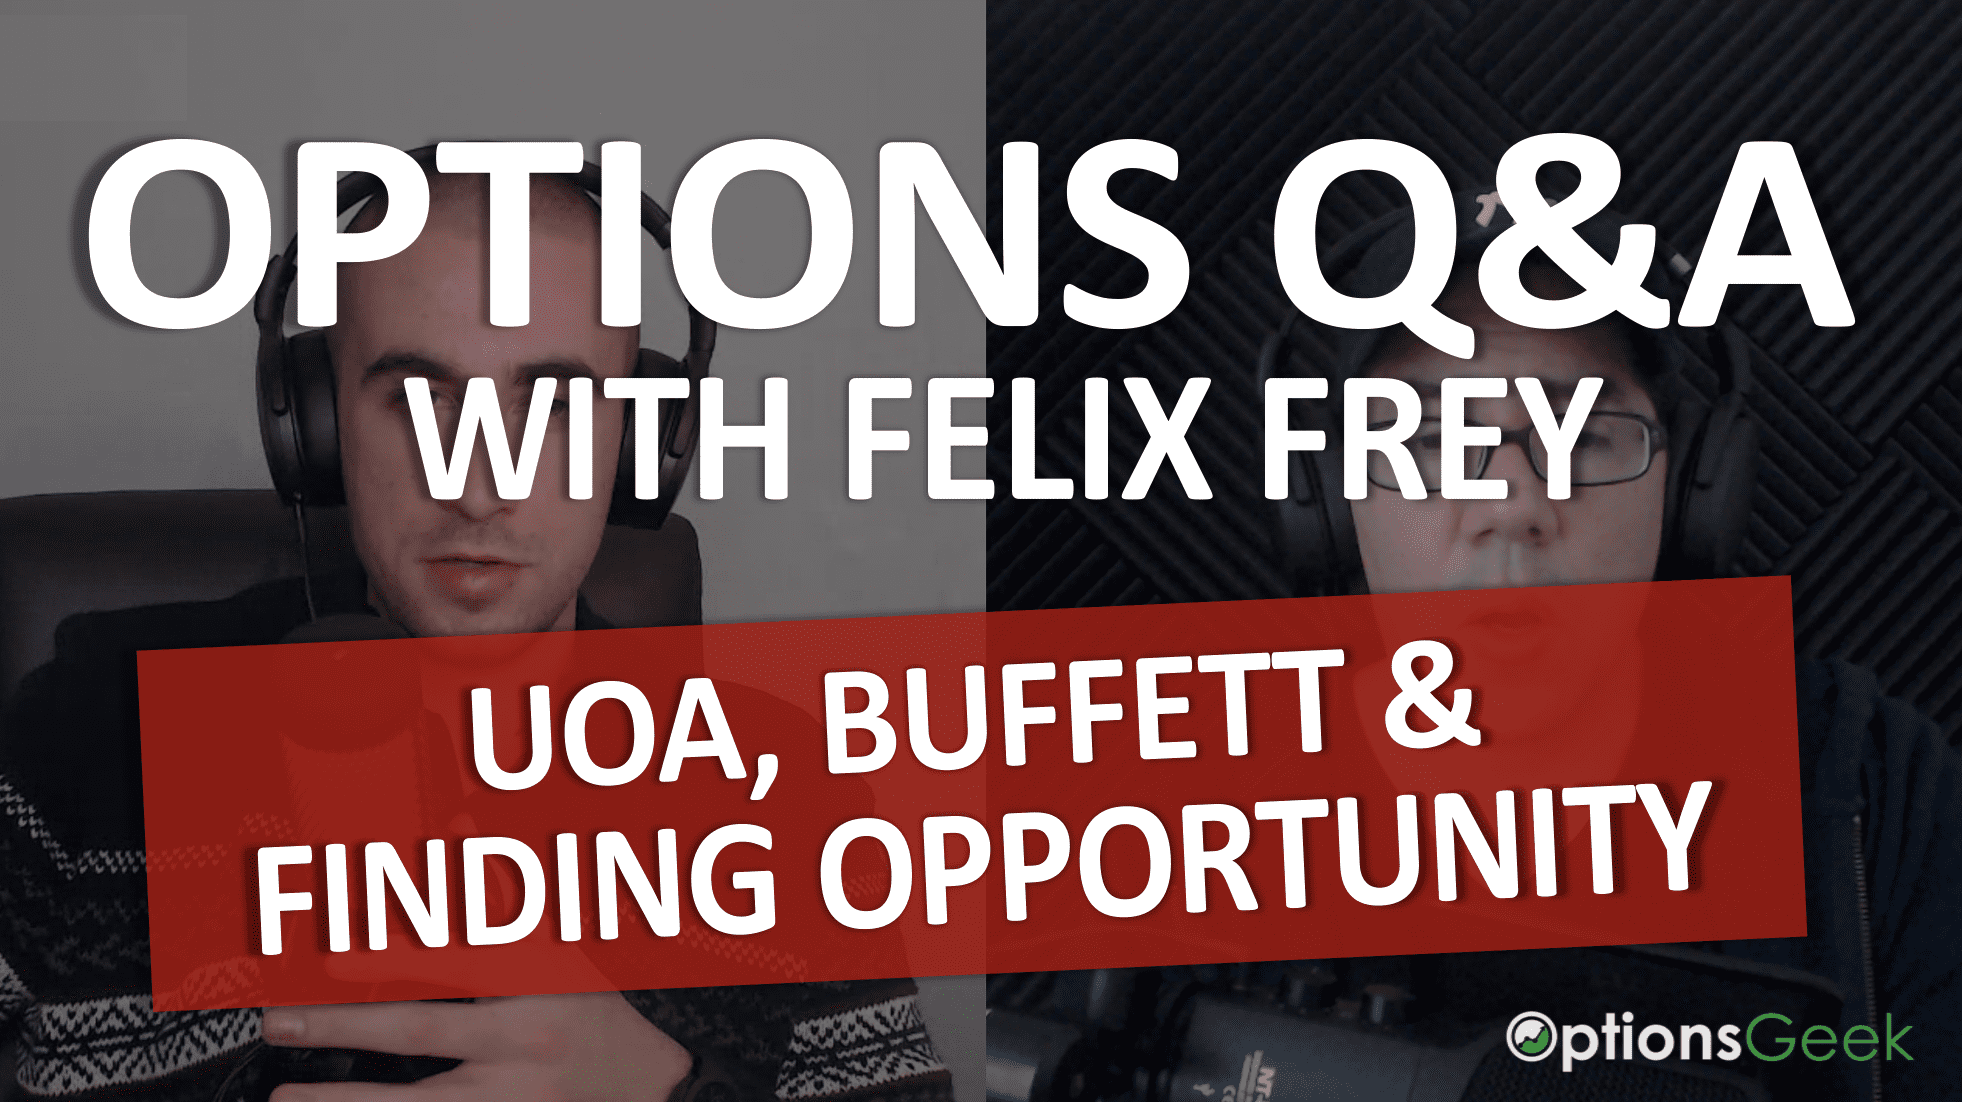 Q&A Buffet UOA Opportunity